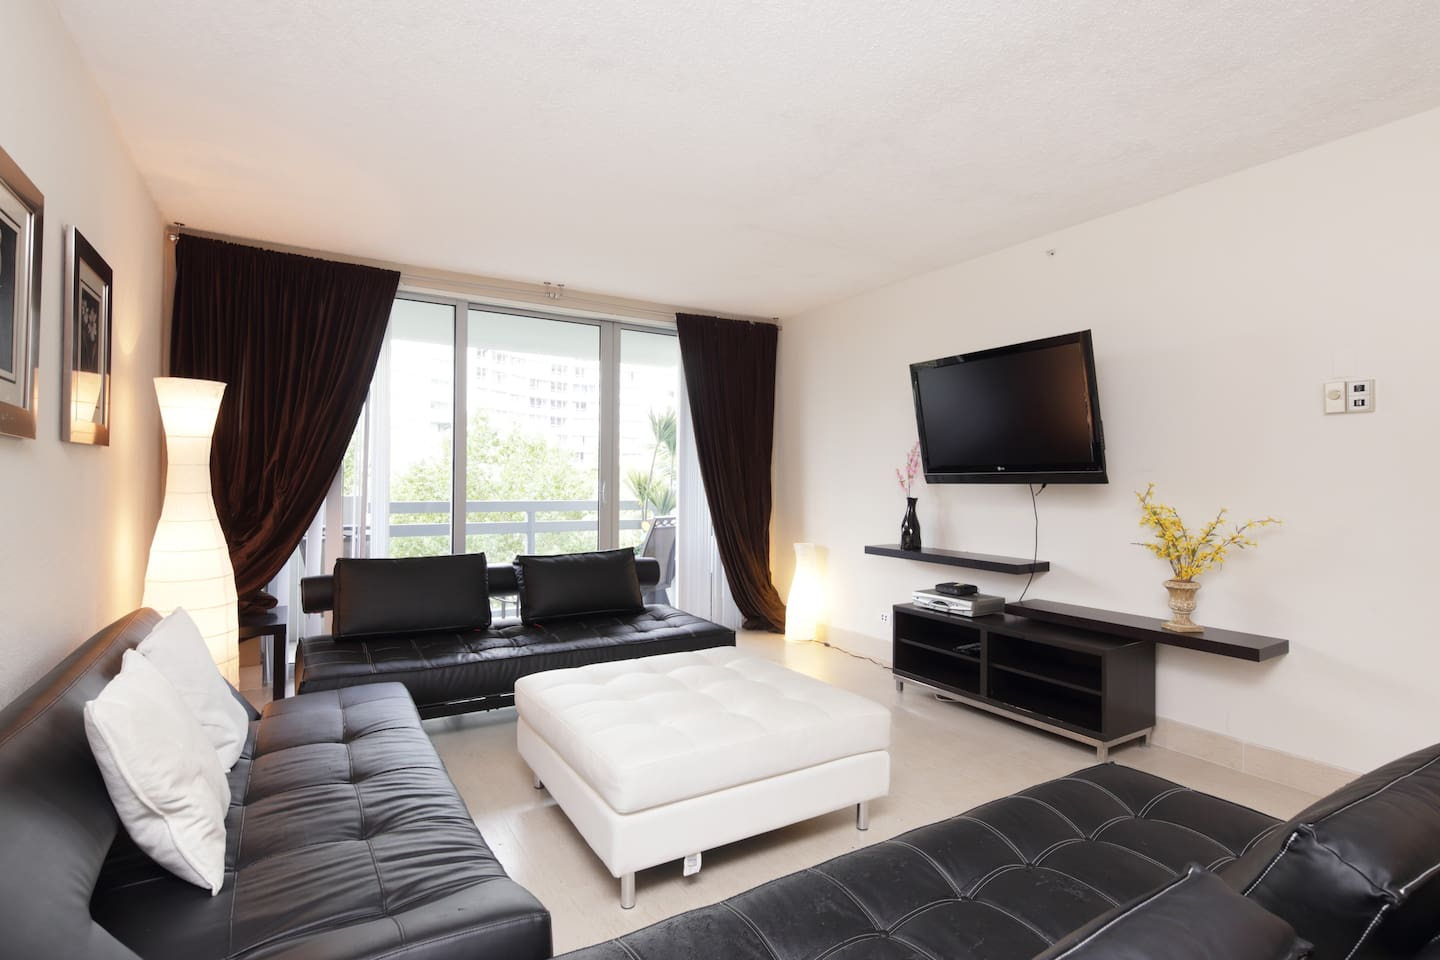 Spacious Living Room with Cable HDTV and Wi-Fi over looking the balcony's garden view